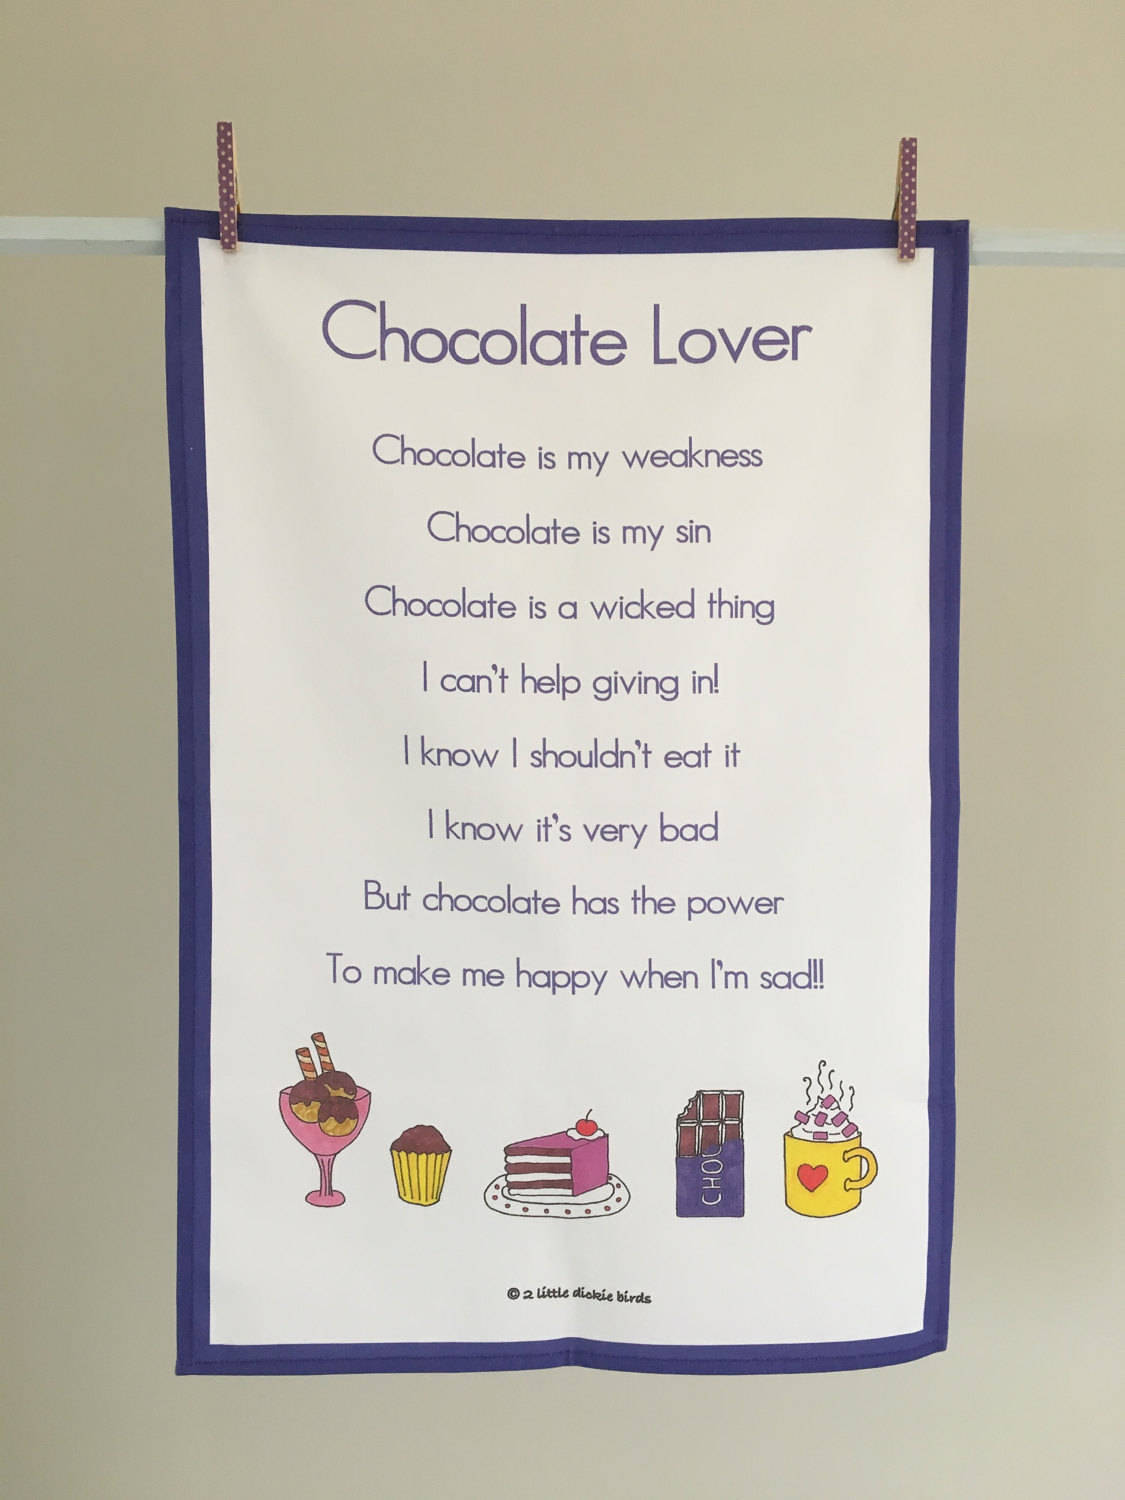 Easter gift chocolate lover tea towel tea towel kitchen towel easter gift chocolate lover tea towel tea towel kitchen towel kitchen gift negle Images